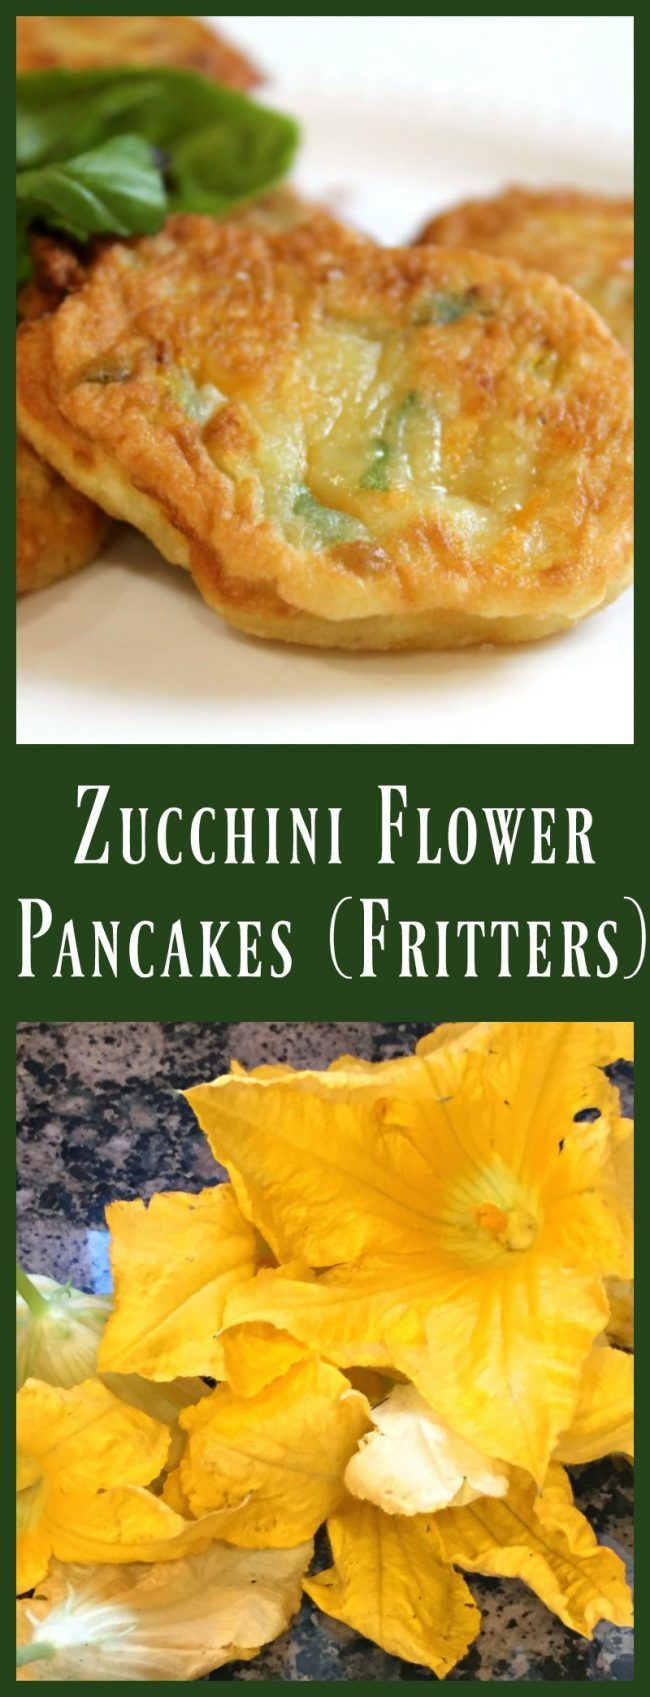 Zucchini Flower Pancakes Fritters Foody Schmoody Blog Recipe Zucchini Flowers Food Vegetable Recipes